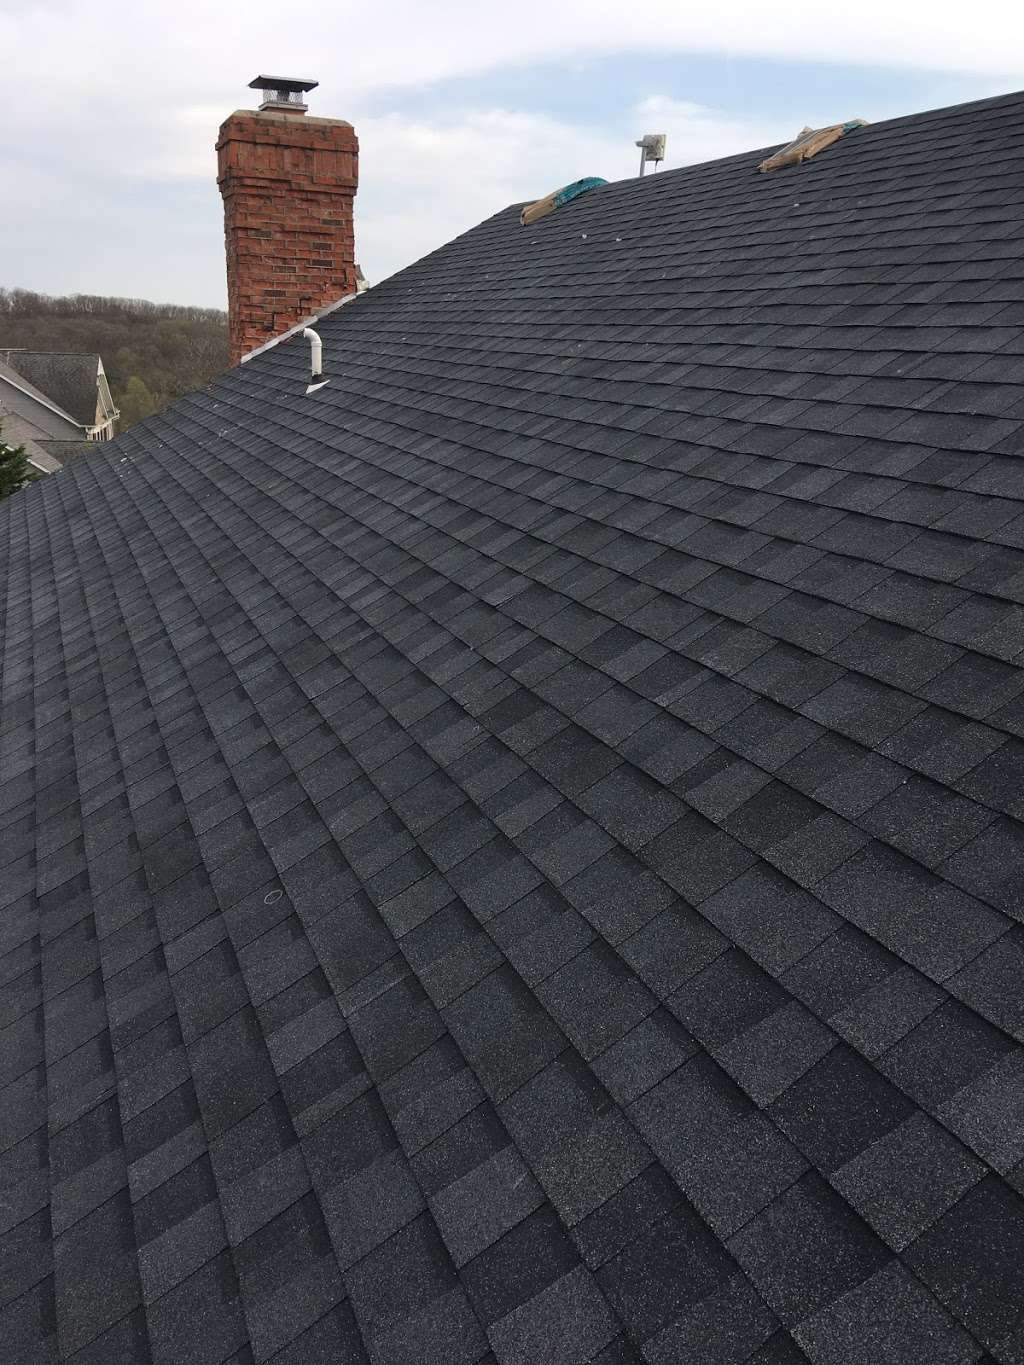 JEFFCO Premier Contracting LLC - roofing contractor  | Photo 2 of 4 | Address: 2934 N George St, York, PA 17406, USA | Phone: (717) 650-0781